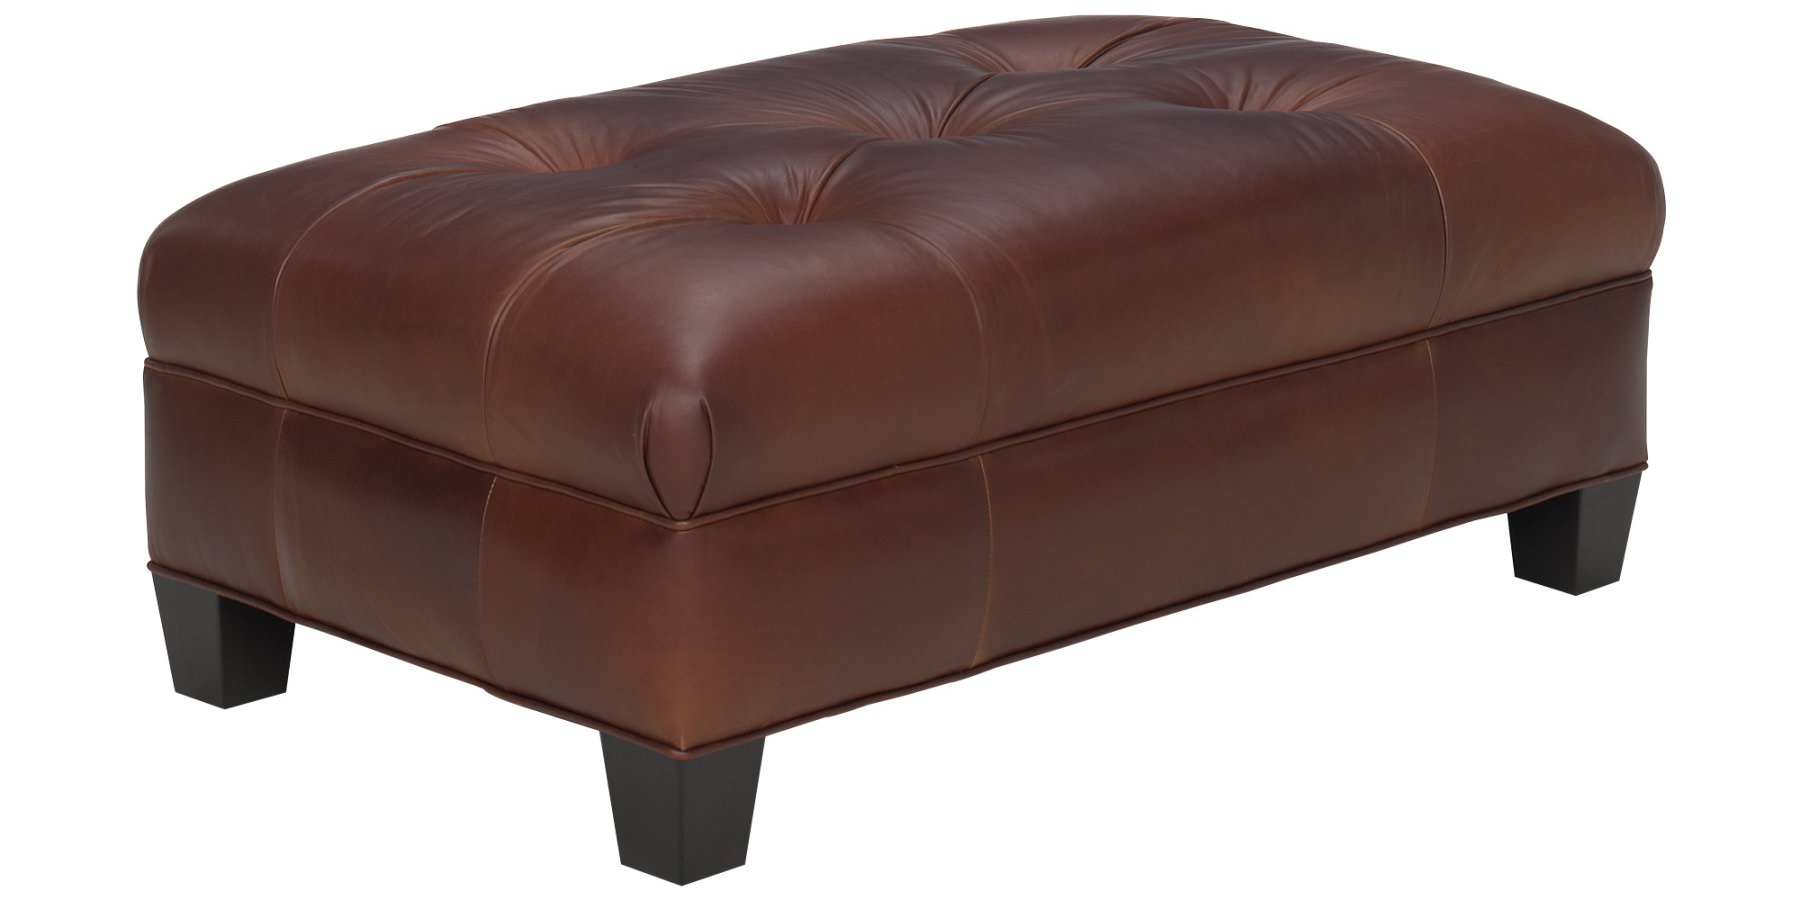 Small Tufted Ottoman Leather Coffee Table Club Furniture